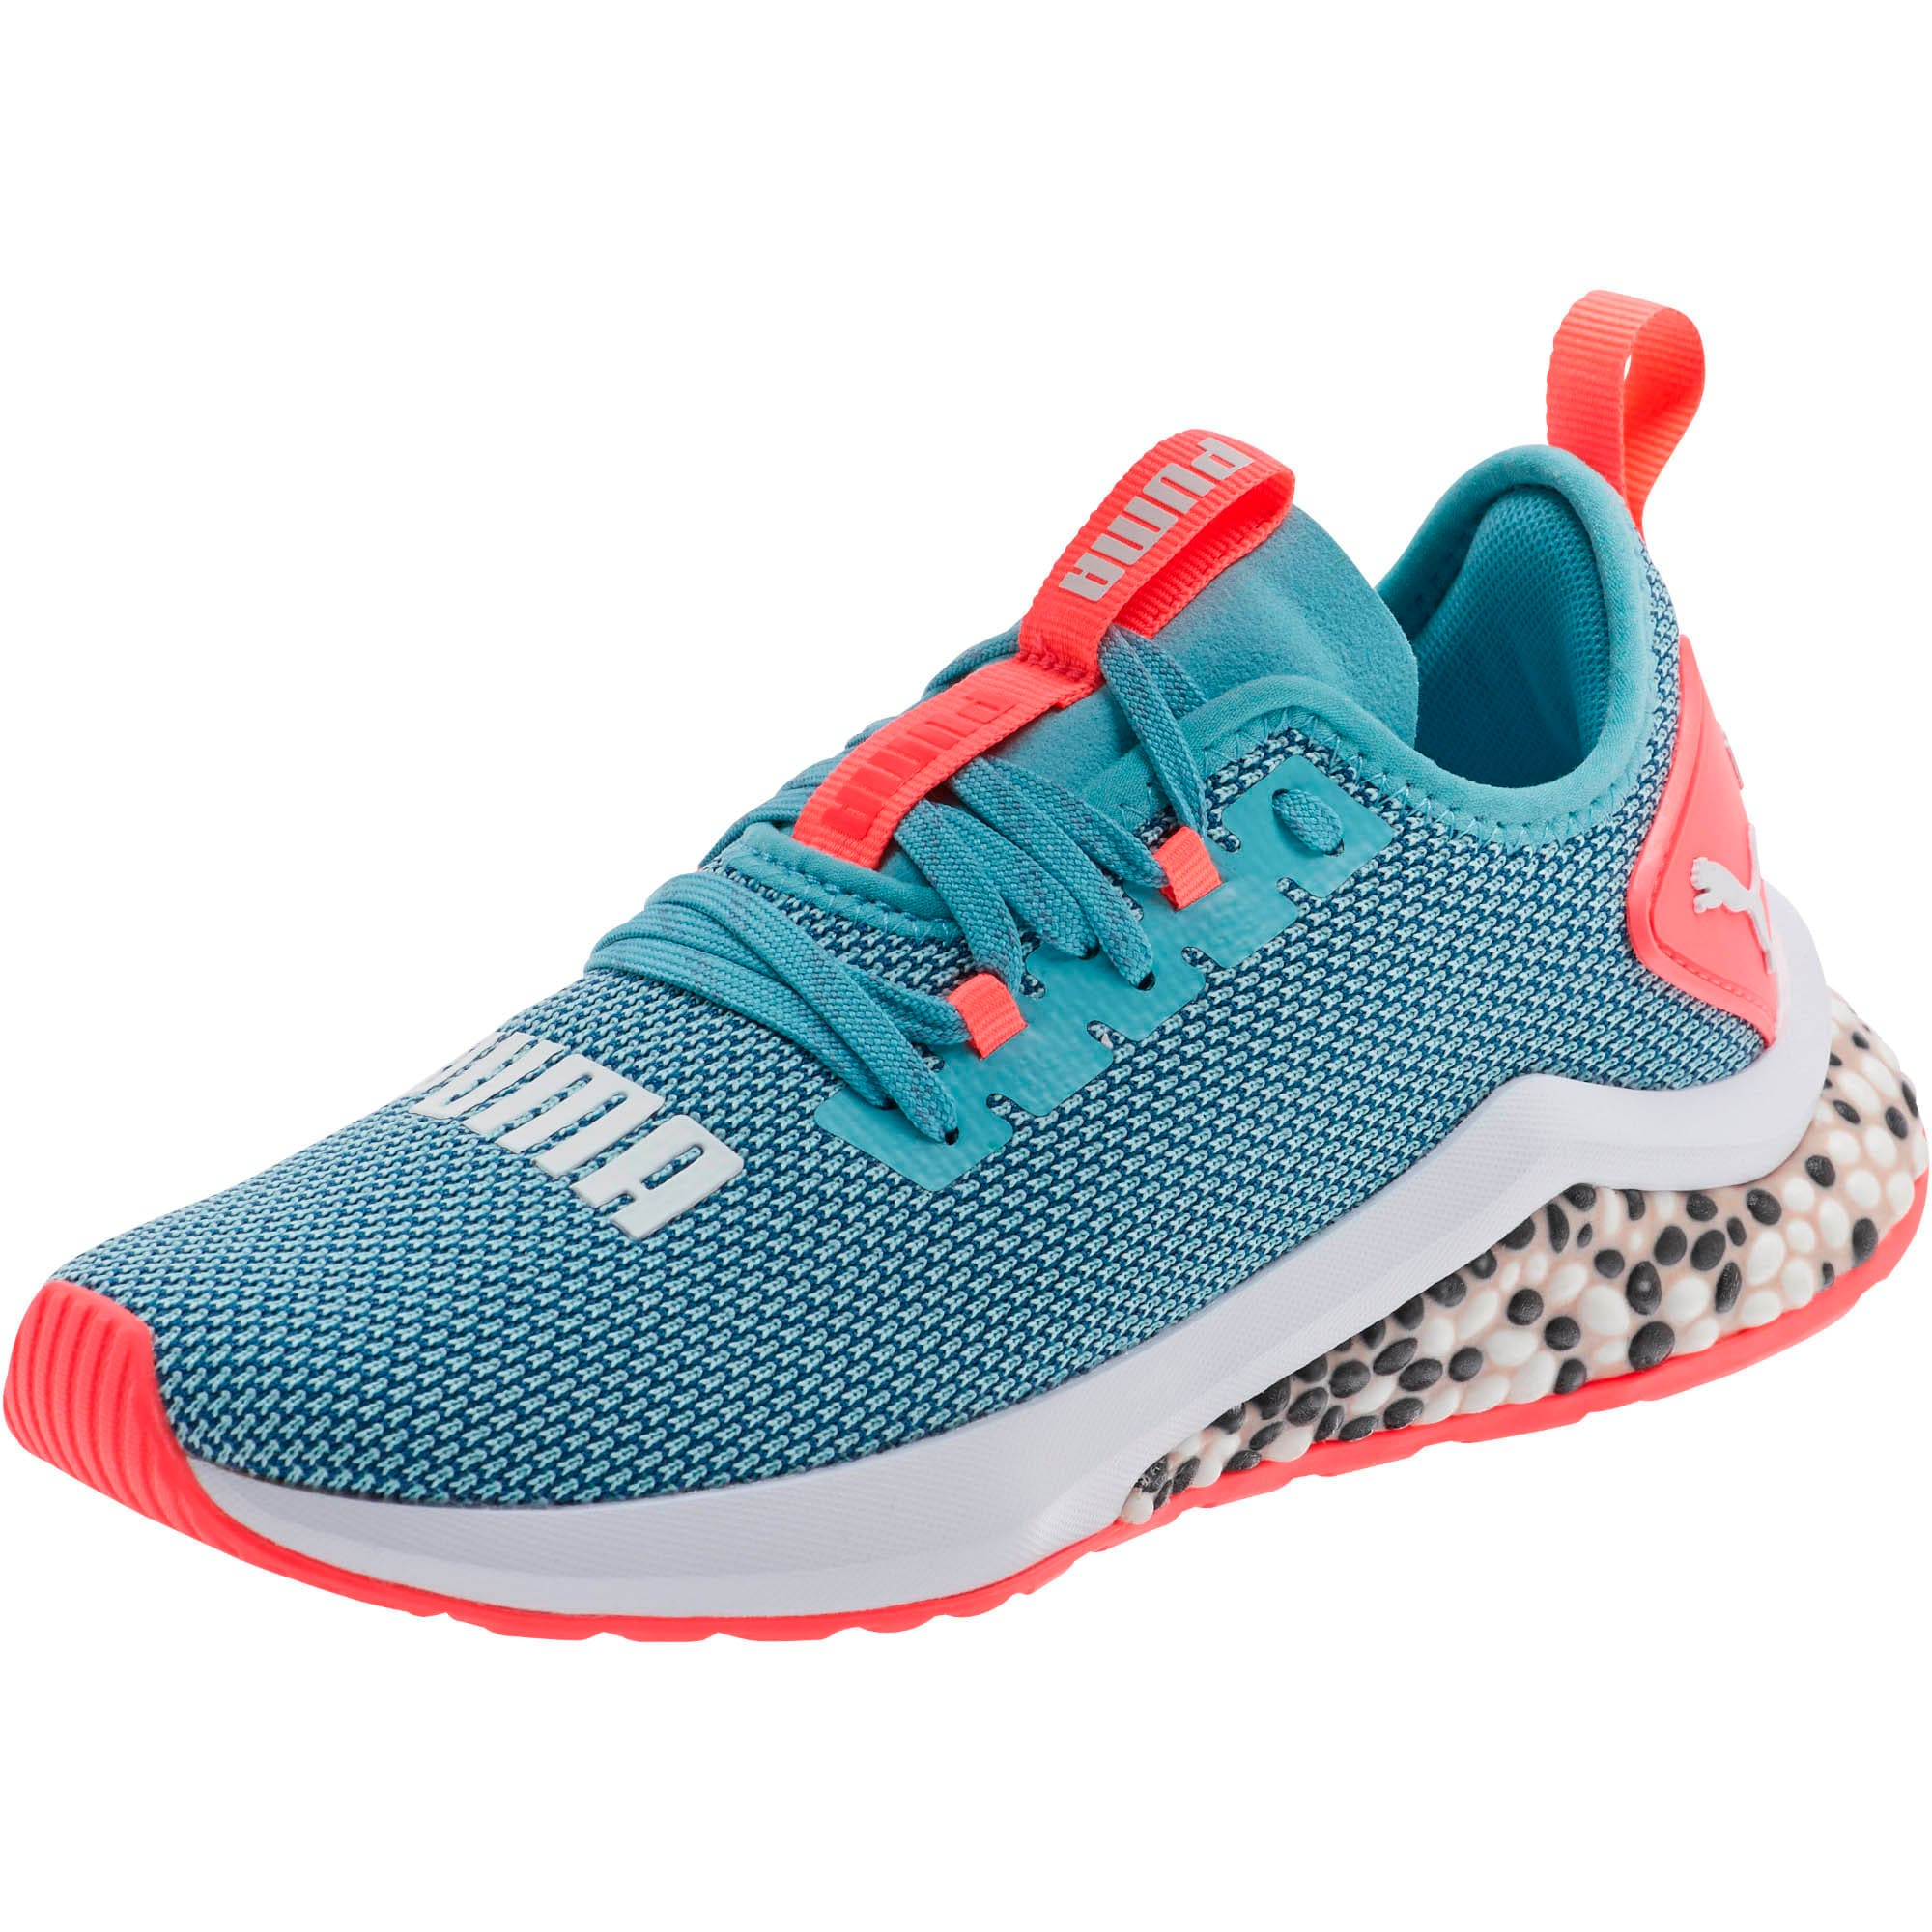 Thumbnail 1 of HYBRID NX Running Shoes JR, Milky Blue-Calypso Coral-Wht, medium